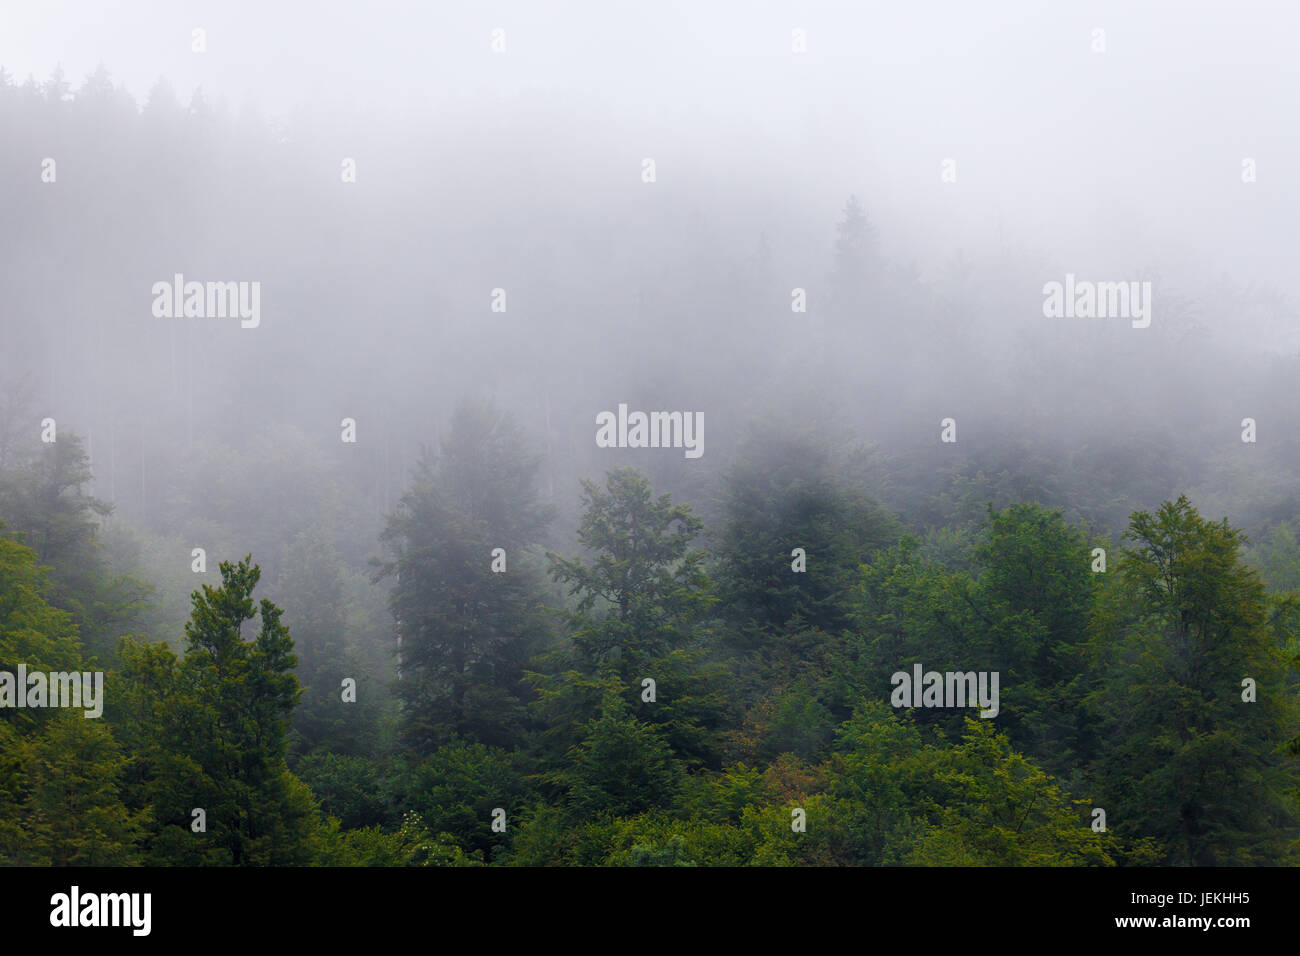 Fairytale weather in the misty green evergreen forrest - Stock Image